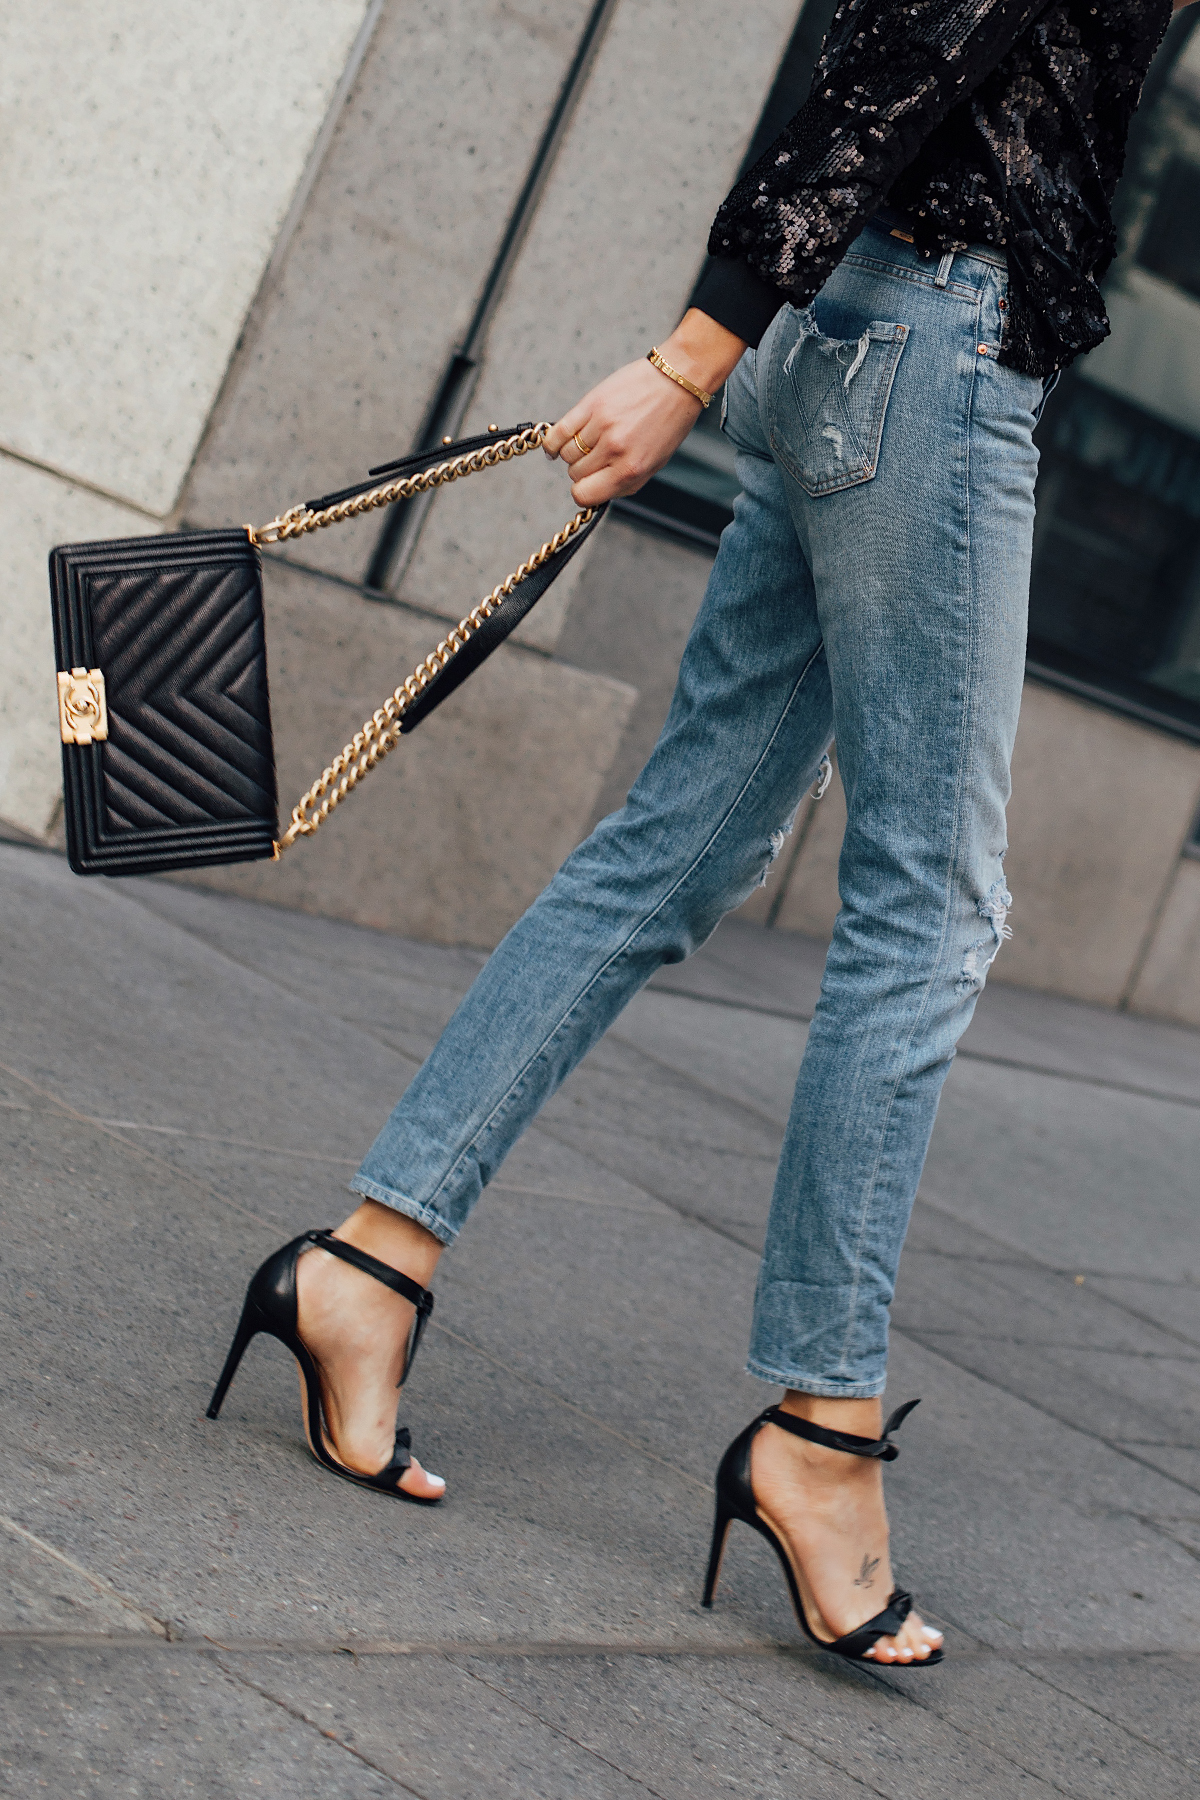 Woman Wearing Black Sequin Top Mother Denim Ripped Jeans Chanel Black Boy Bag Black Heeled Sandals Fashion Jackson San Diego Fashion Blogger Street Style NYE Outift